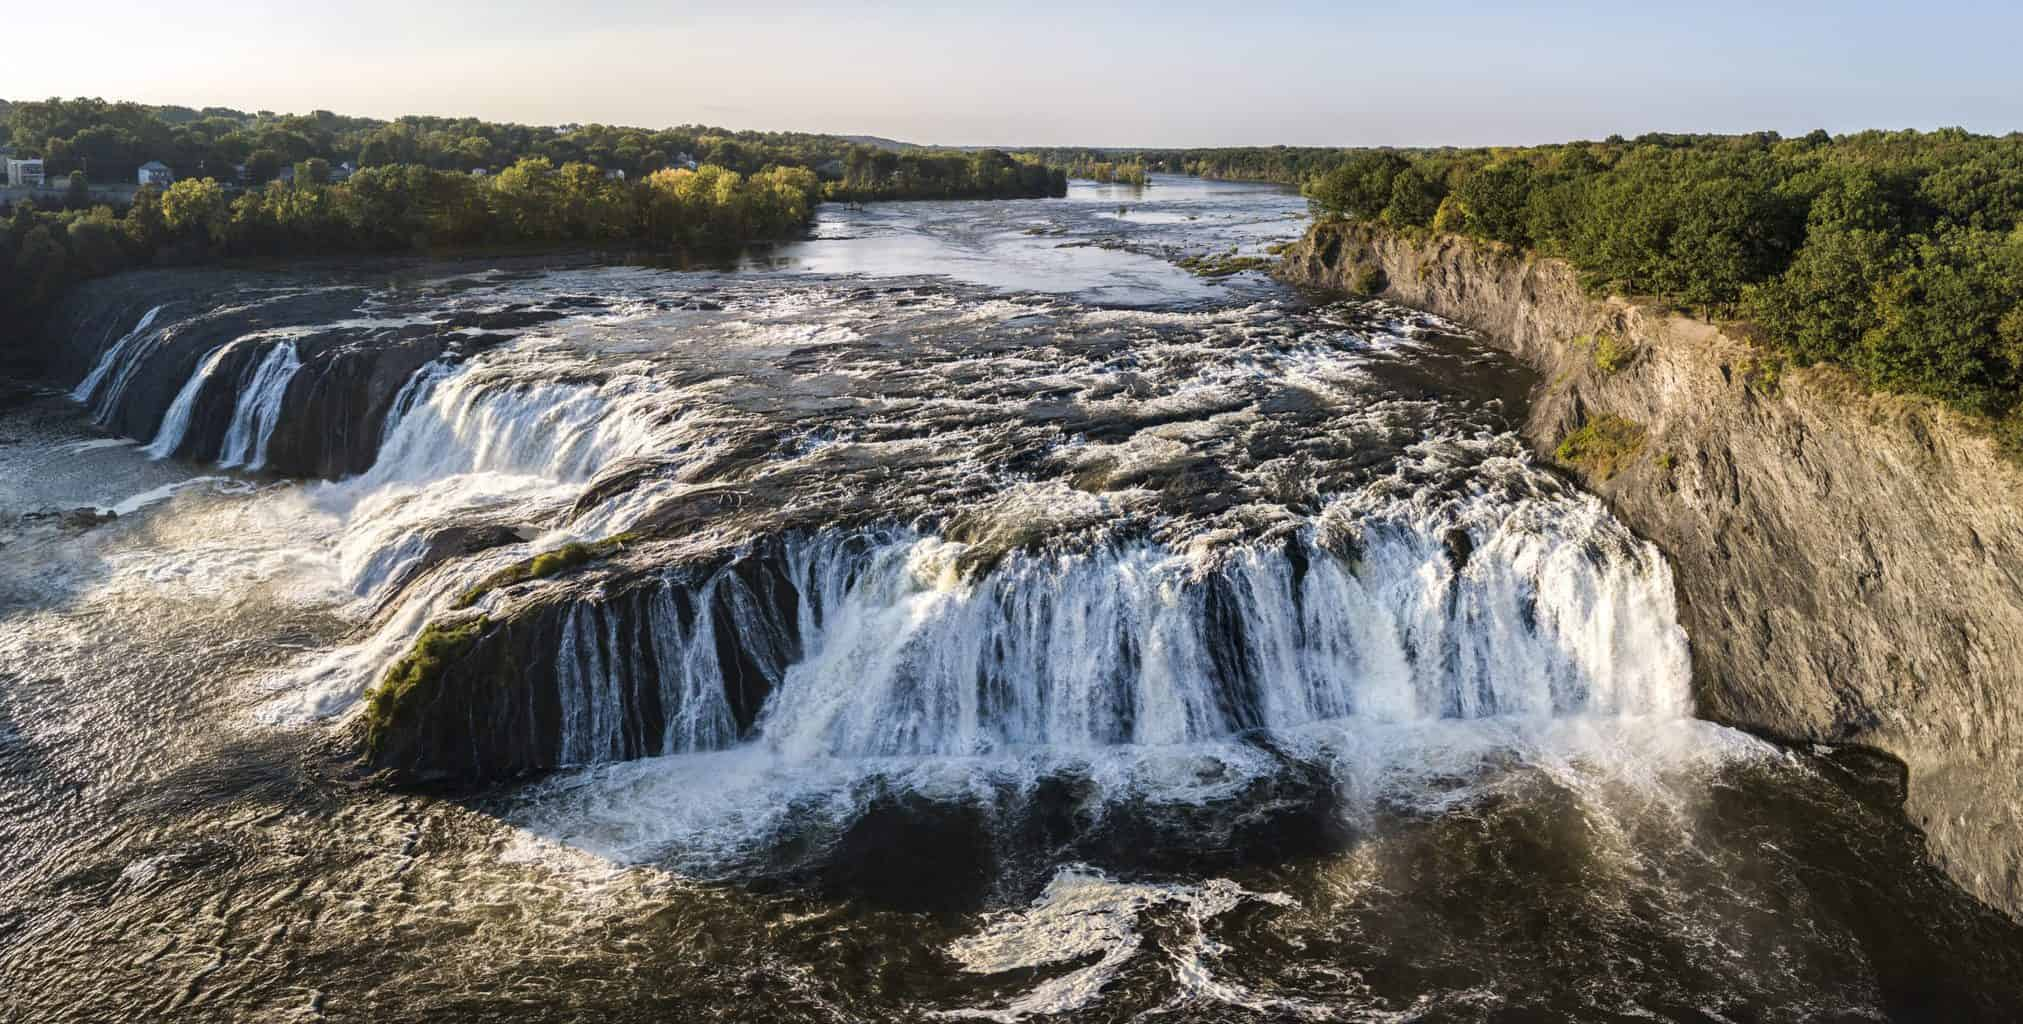 An aerial view of Cohoes Falls along the Mohawk River.